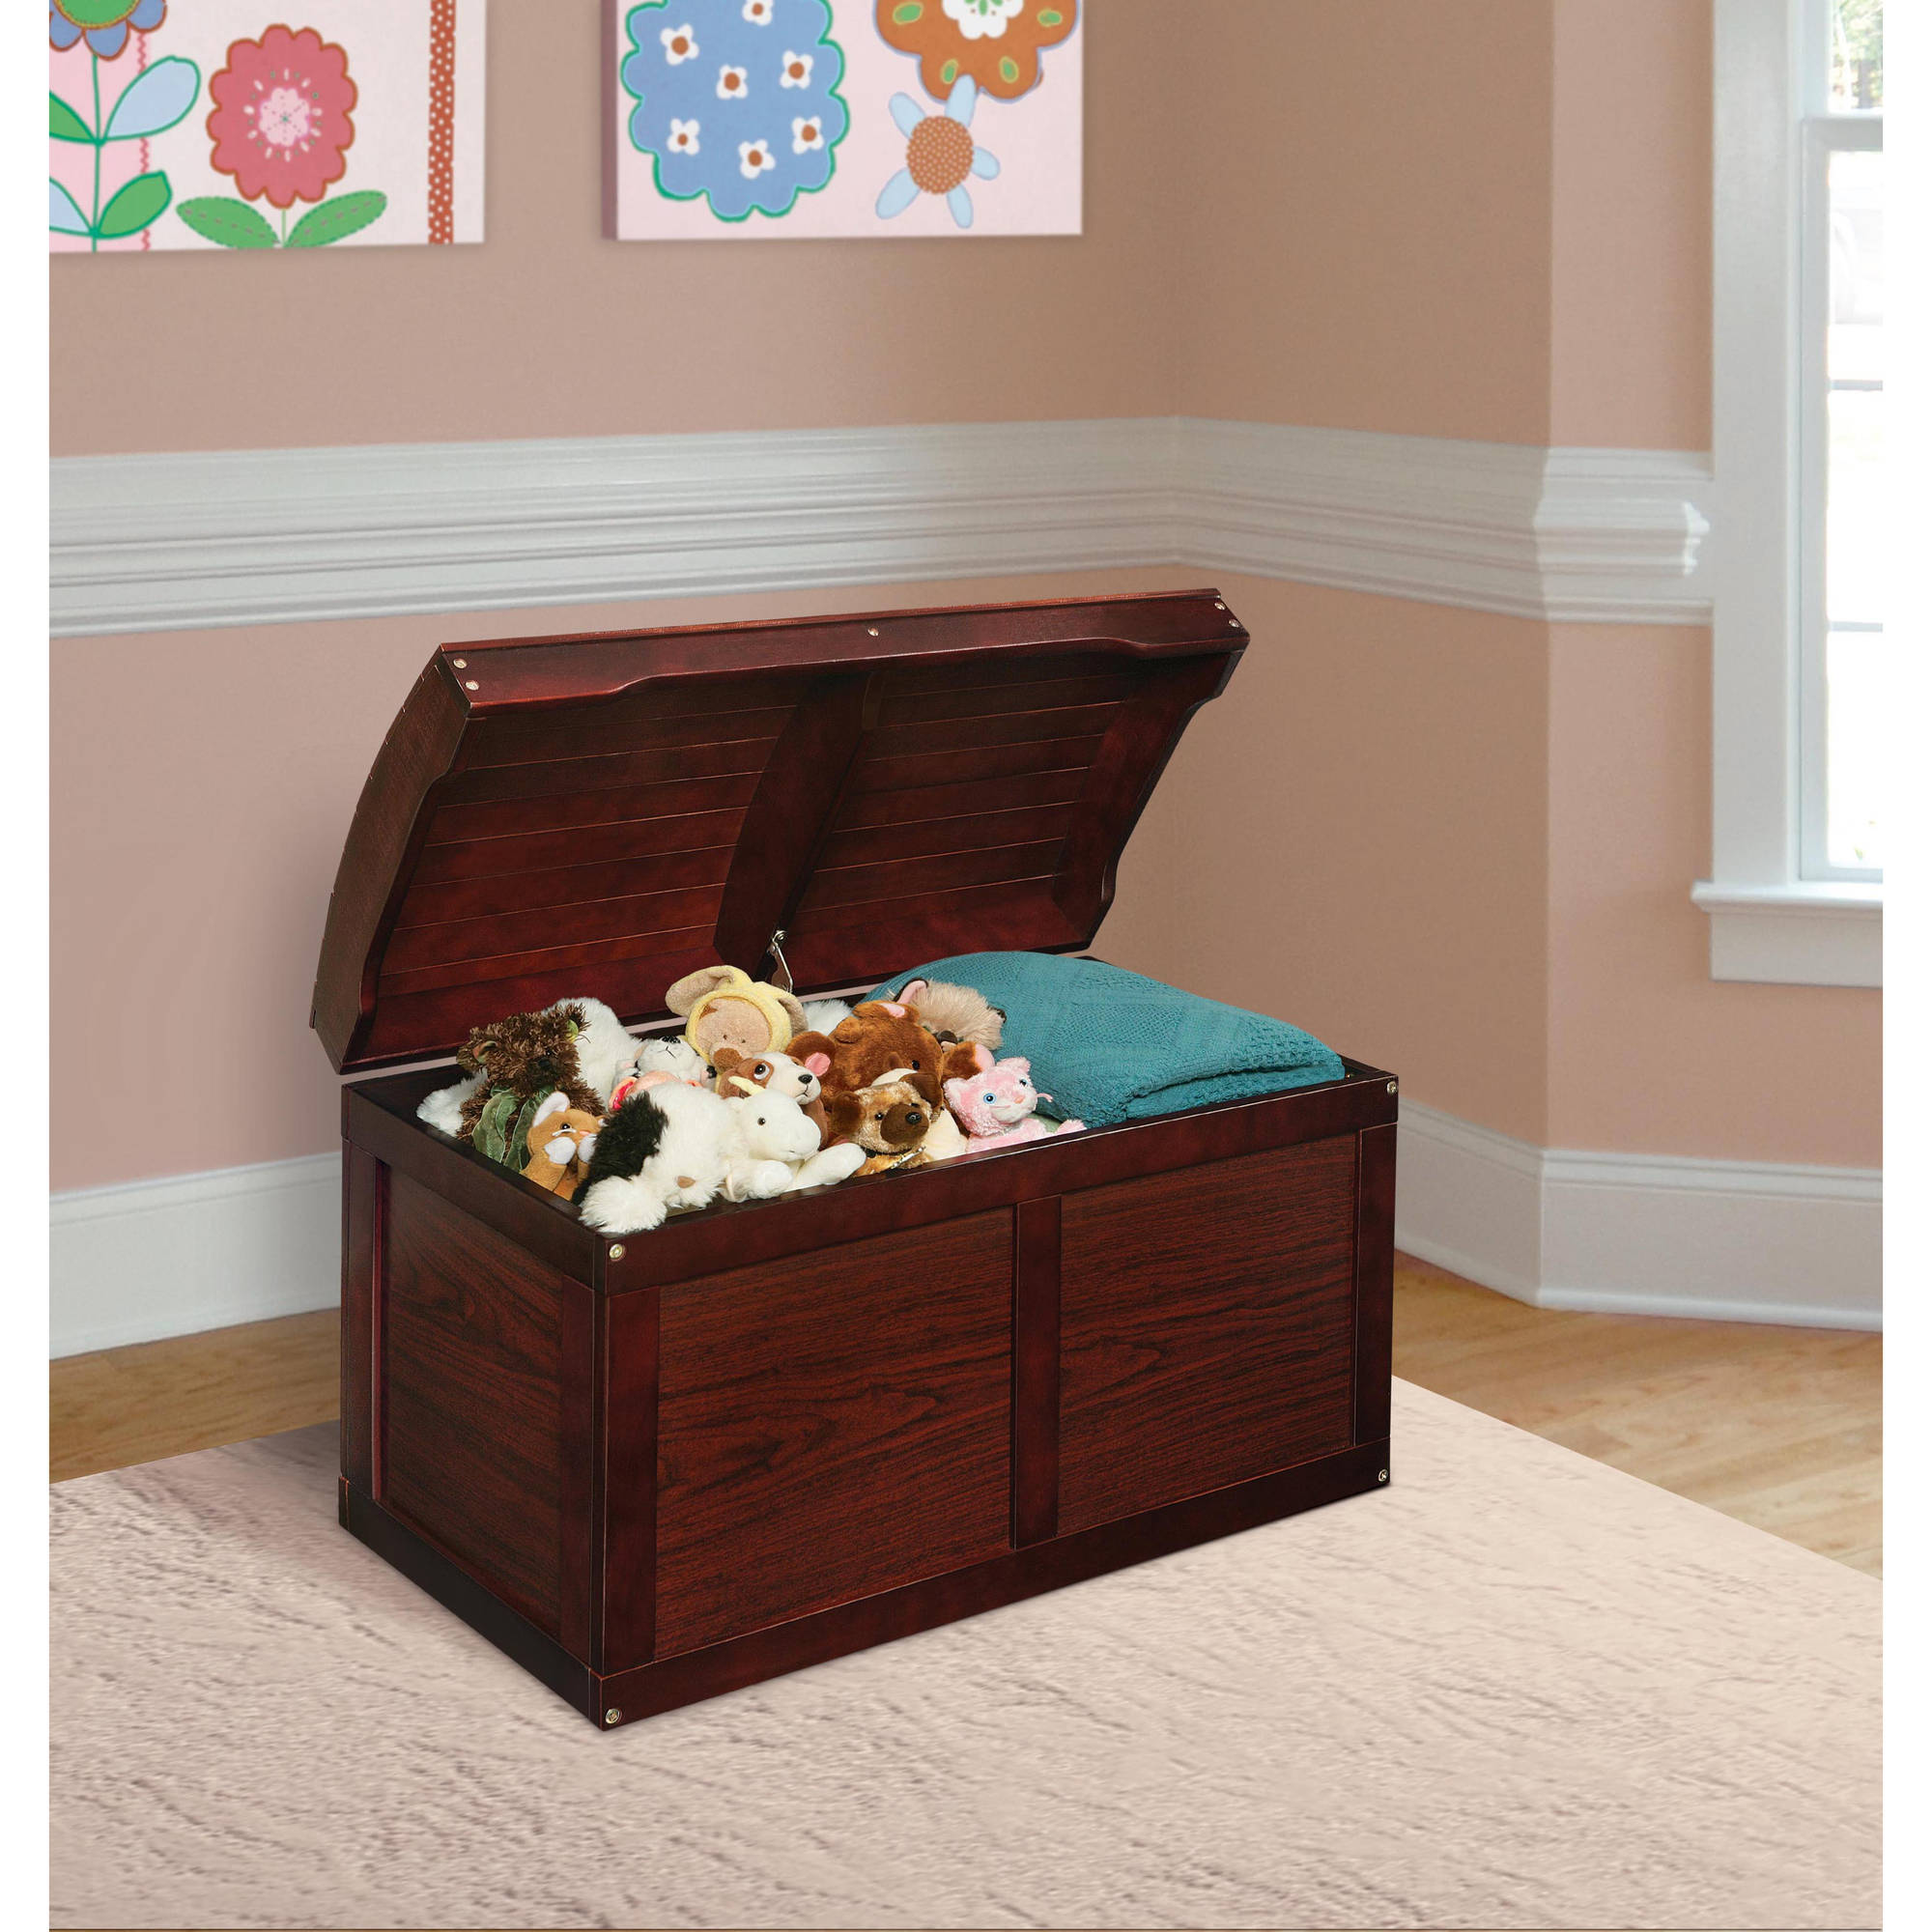 Badger Basket - Barrel Top Toy Chest, Multiple Colors